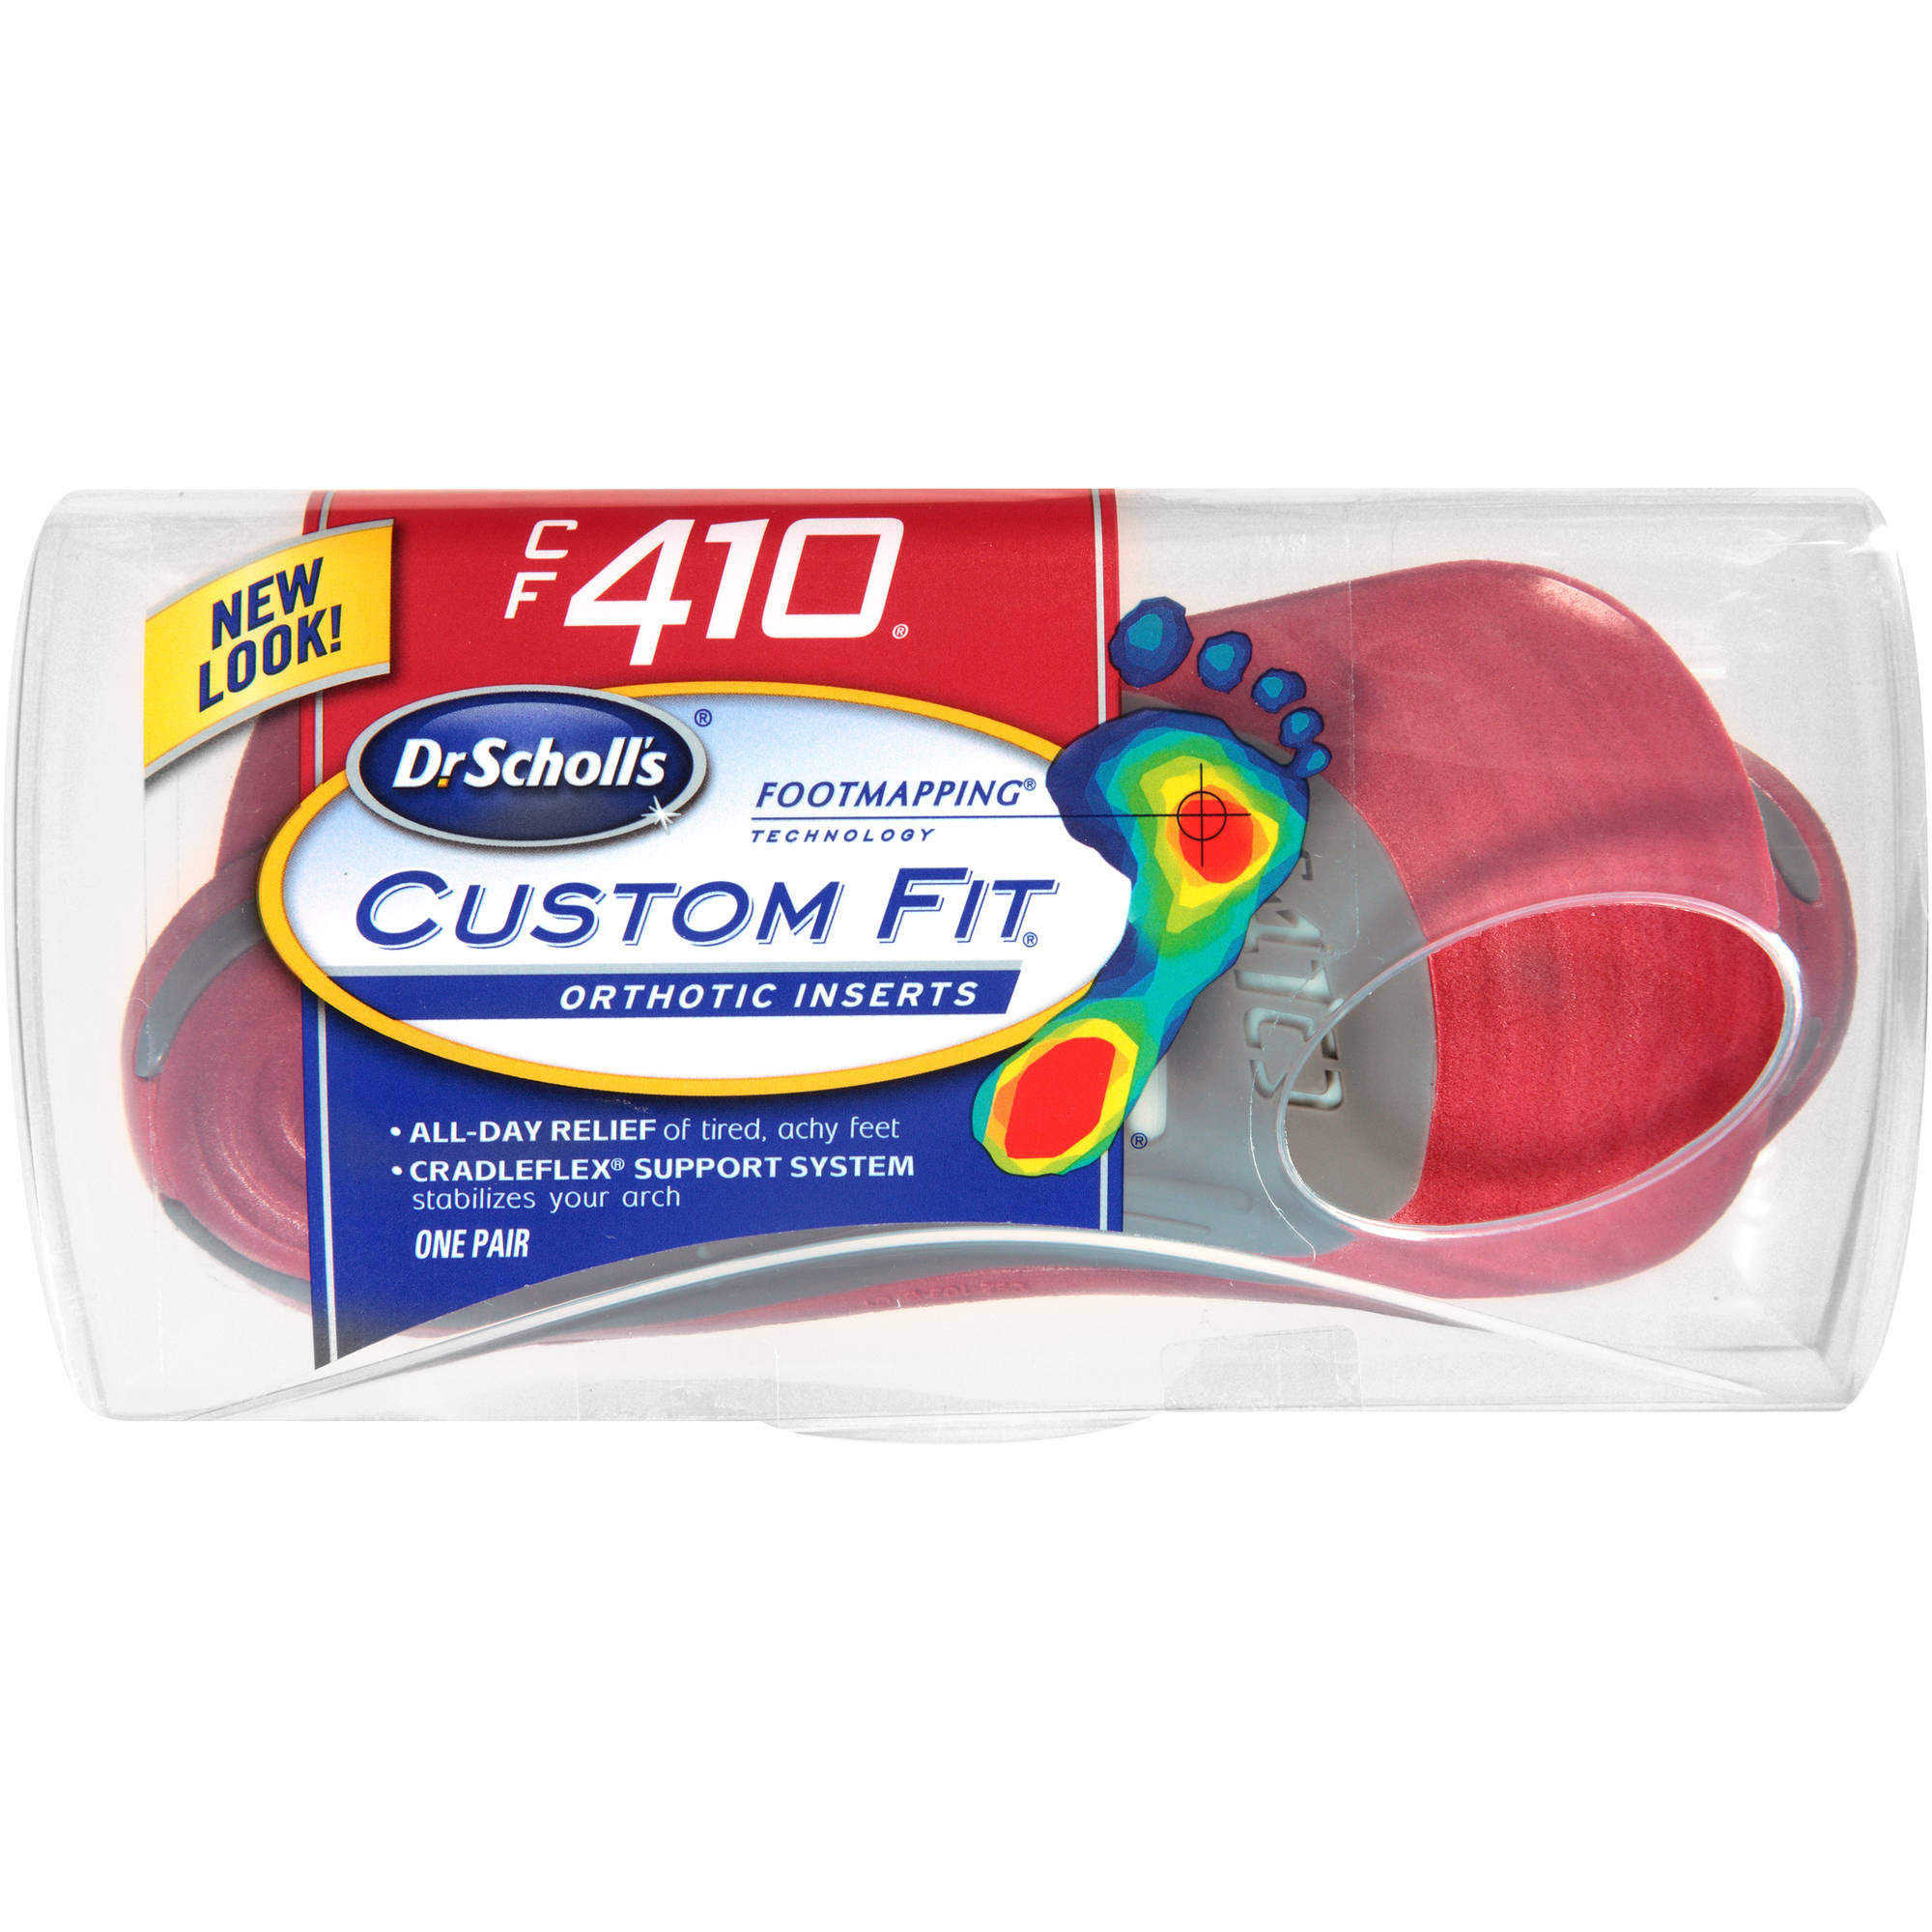 Dr. Scholl's Custom Fit CF410 Orthotic Inserts, 1 pr